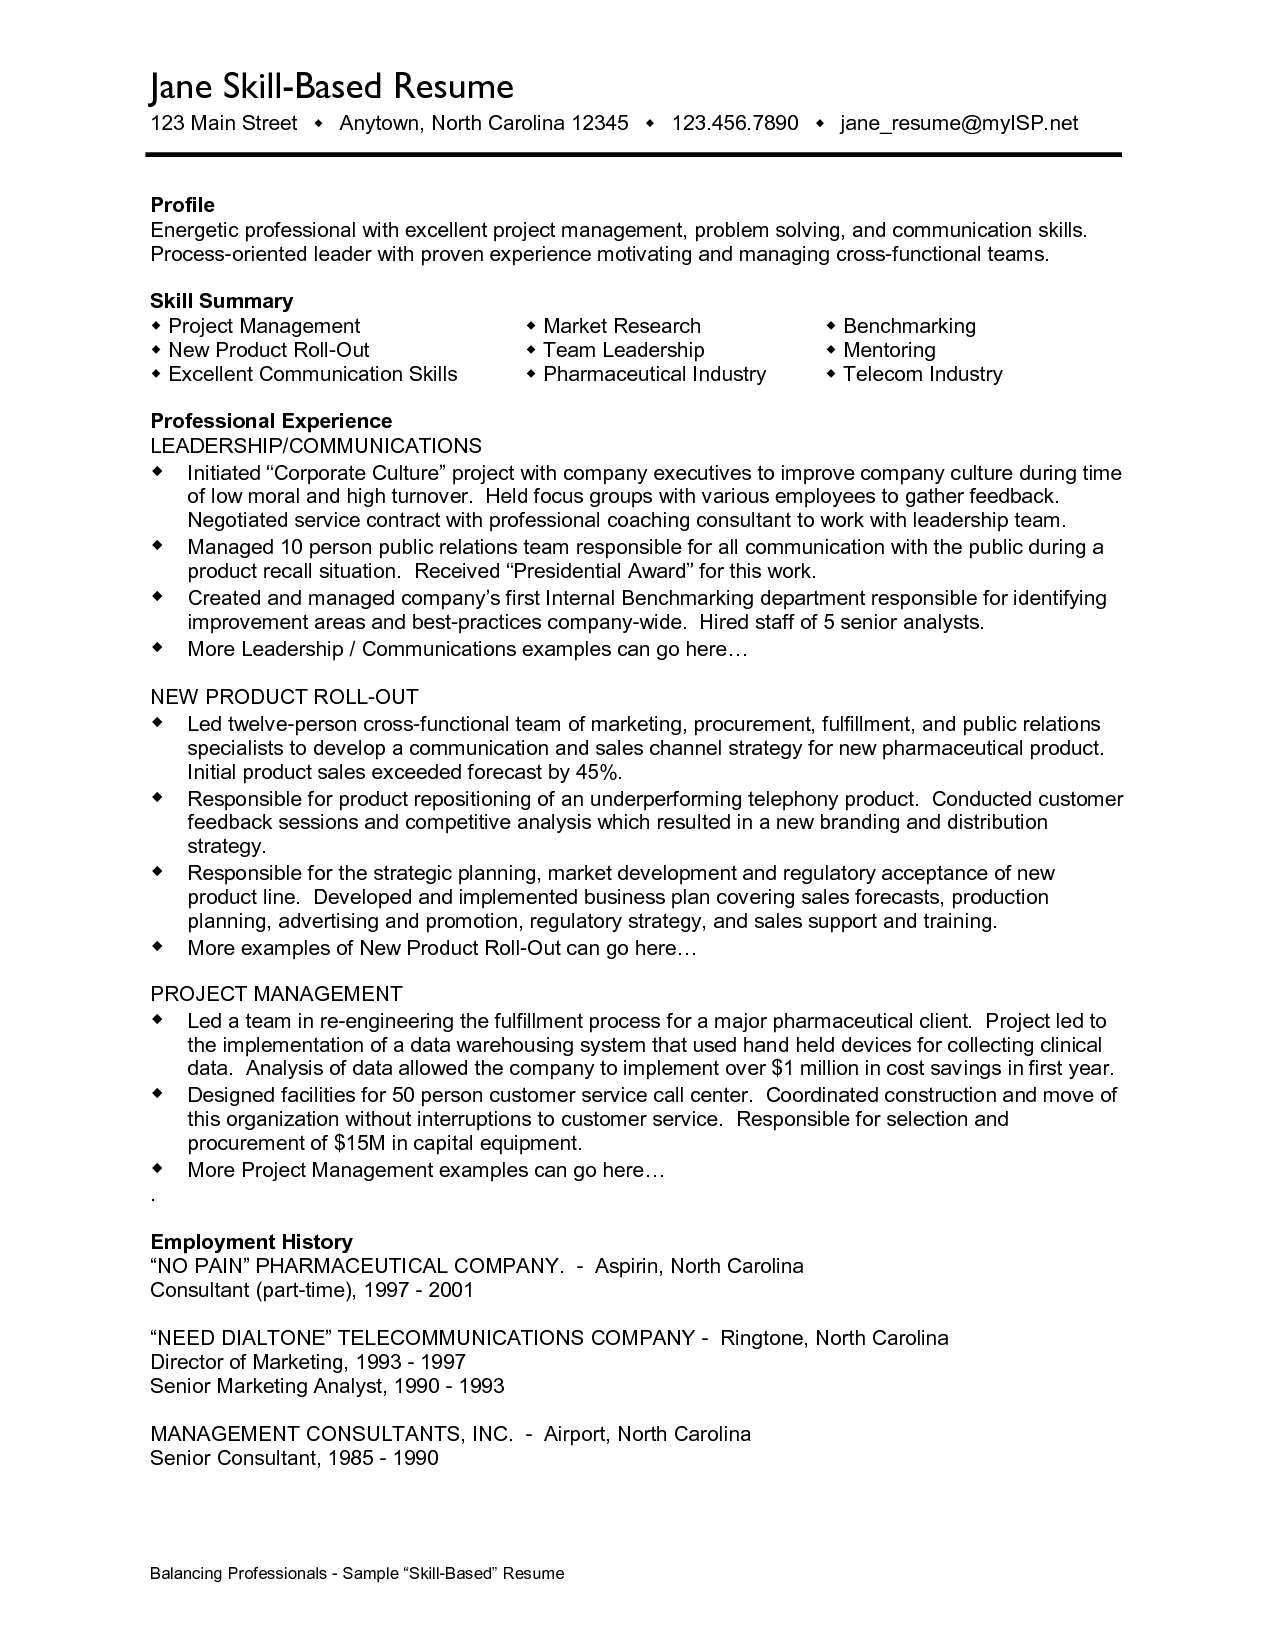 Resume Employment History Job Resume Communication Skills  Httpwwwresumecareerjob